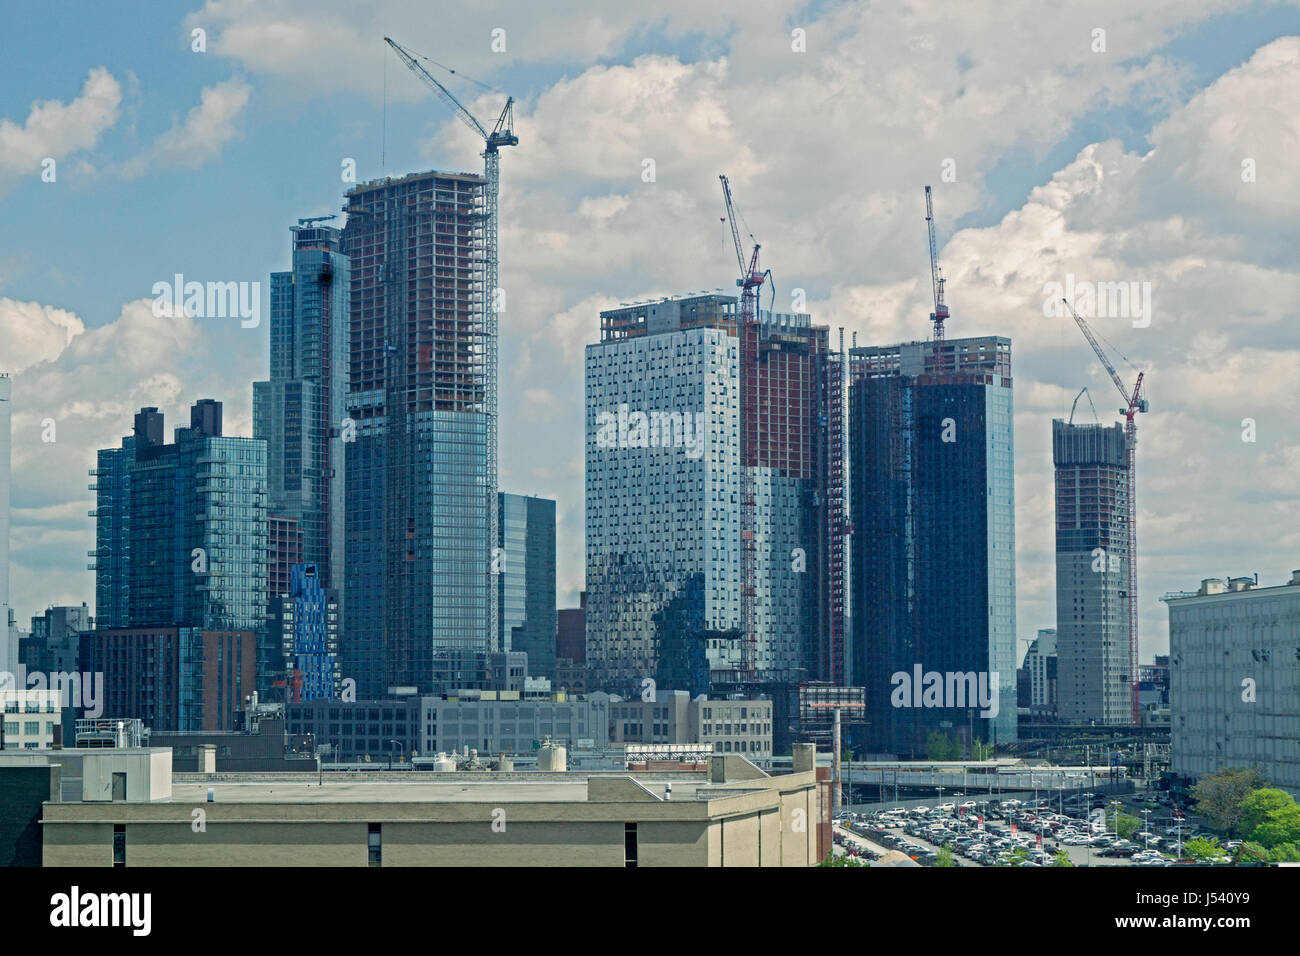 Skyscrapers under construction in the Long Island City section of Queens New York City - Stock Image